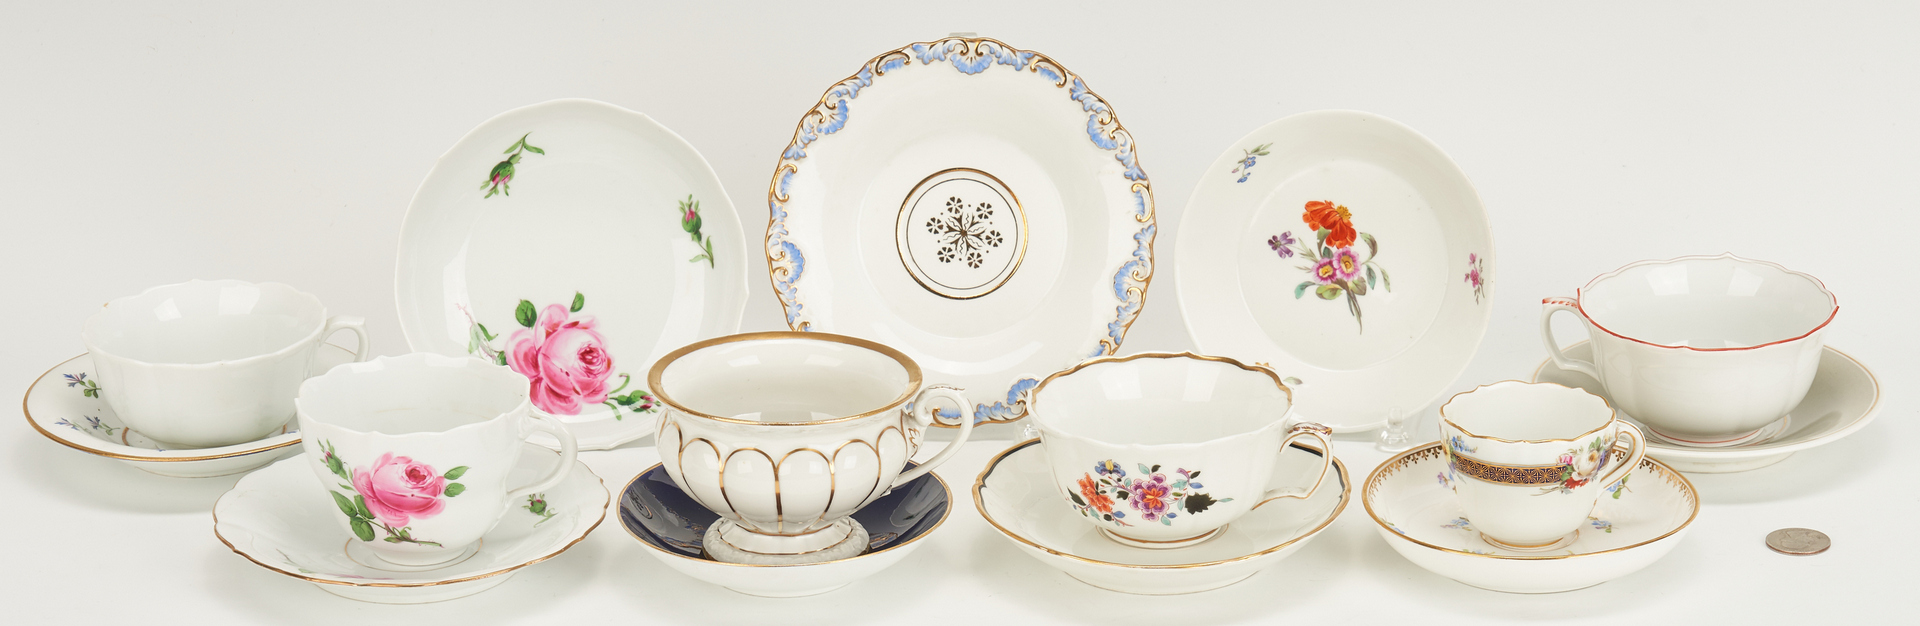 Lot 847: 15 Cups and Saucers, incl. Meissen, KPM